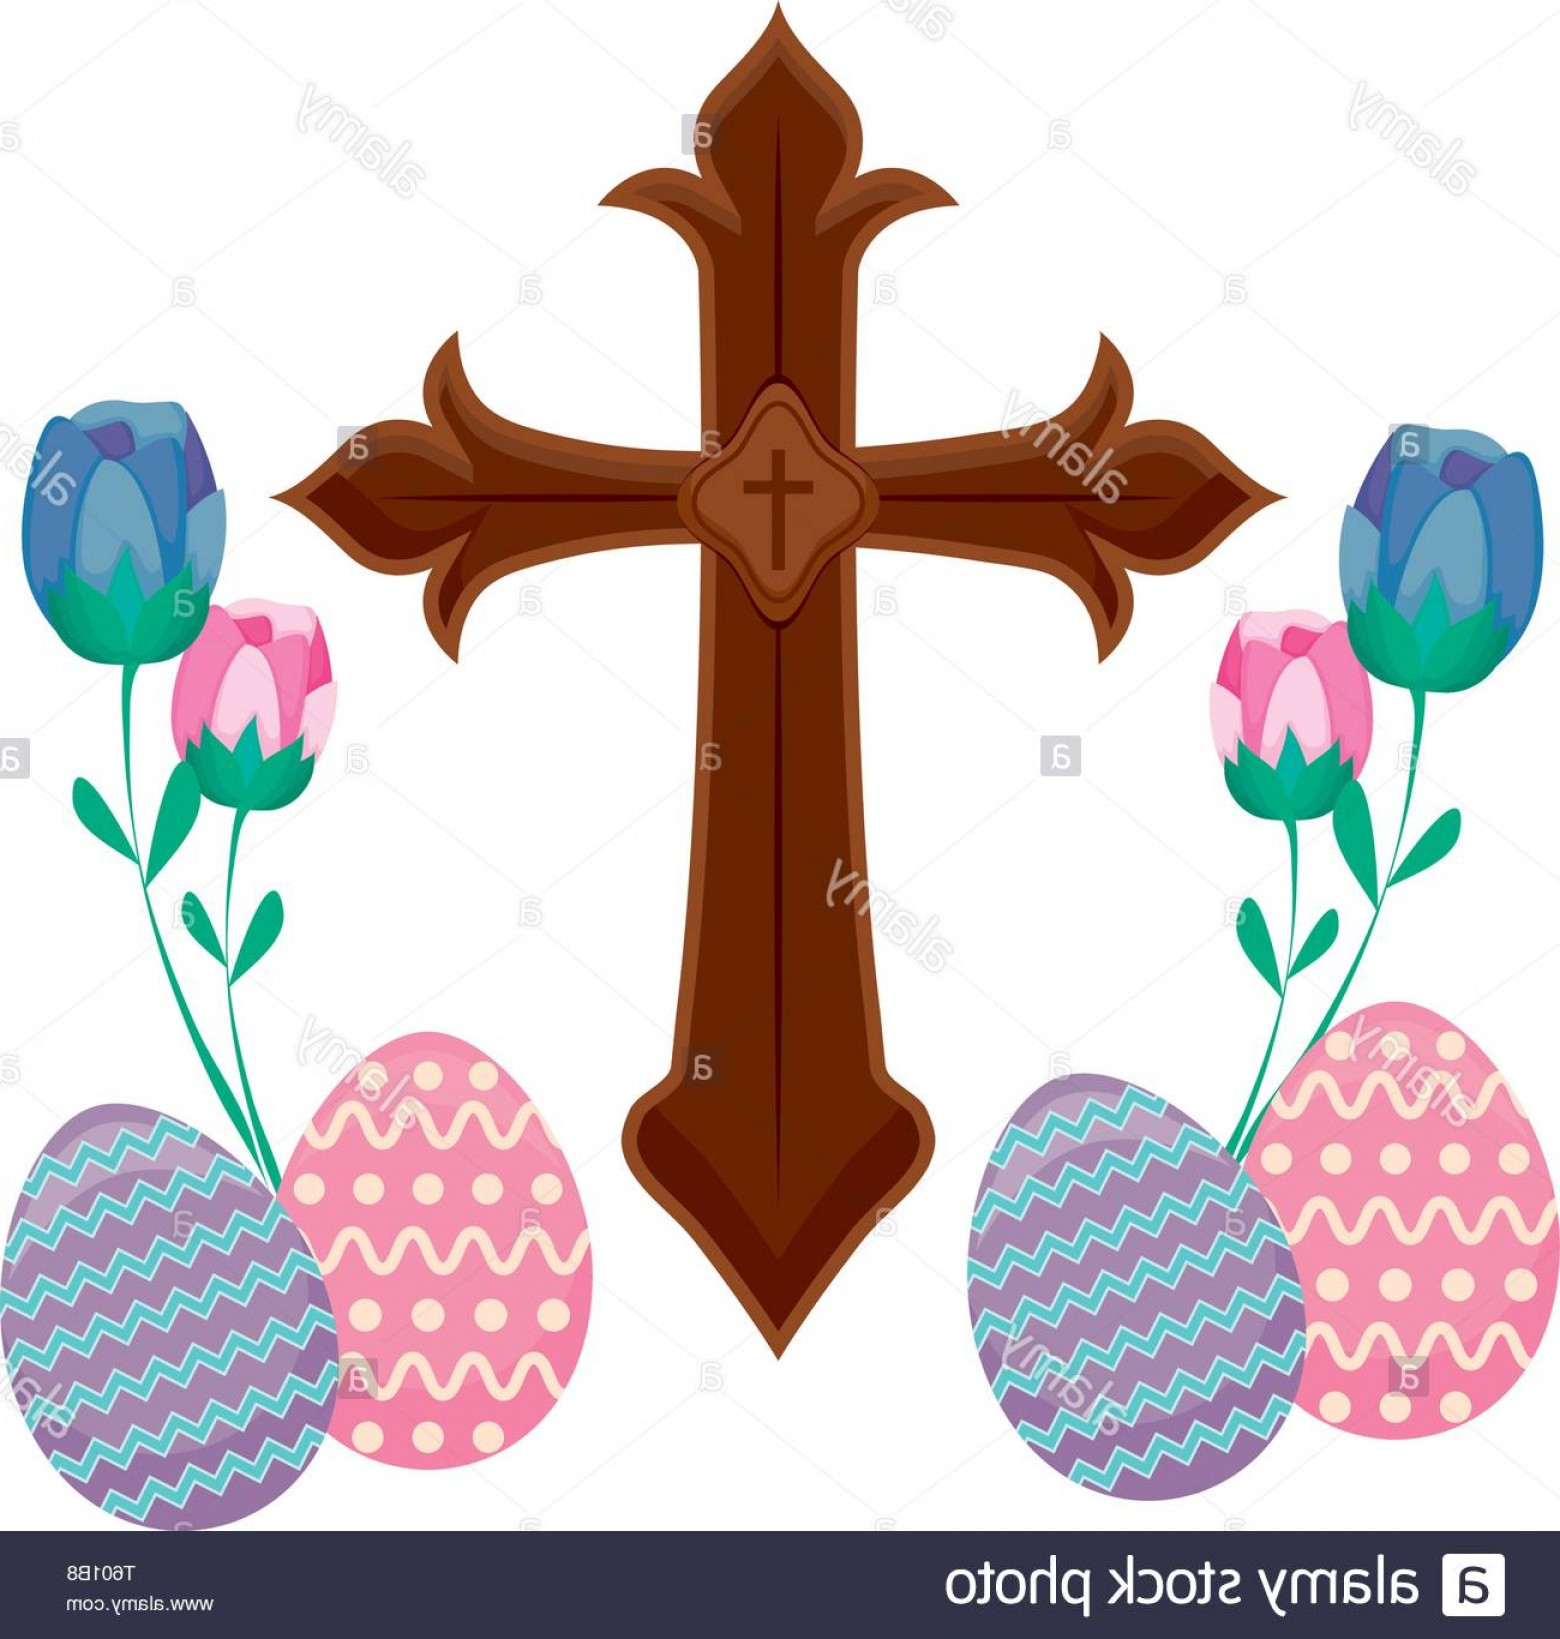 Catholic Clip Art Vector: Wooden Catholic Cross With Eggs Of Easter And Flowers Vector Illustration Design Image